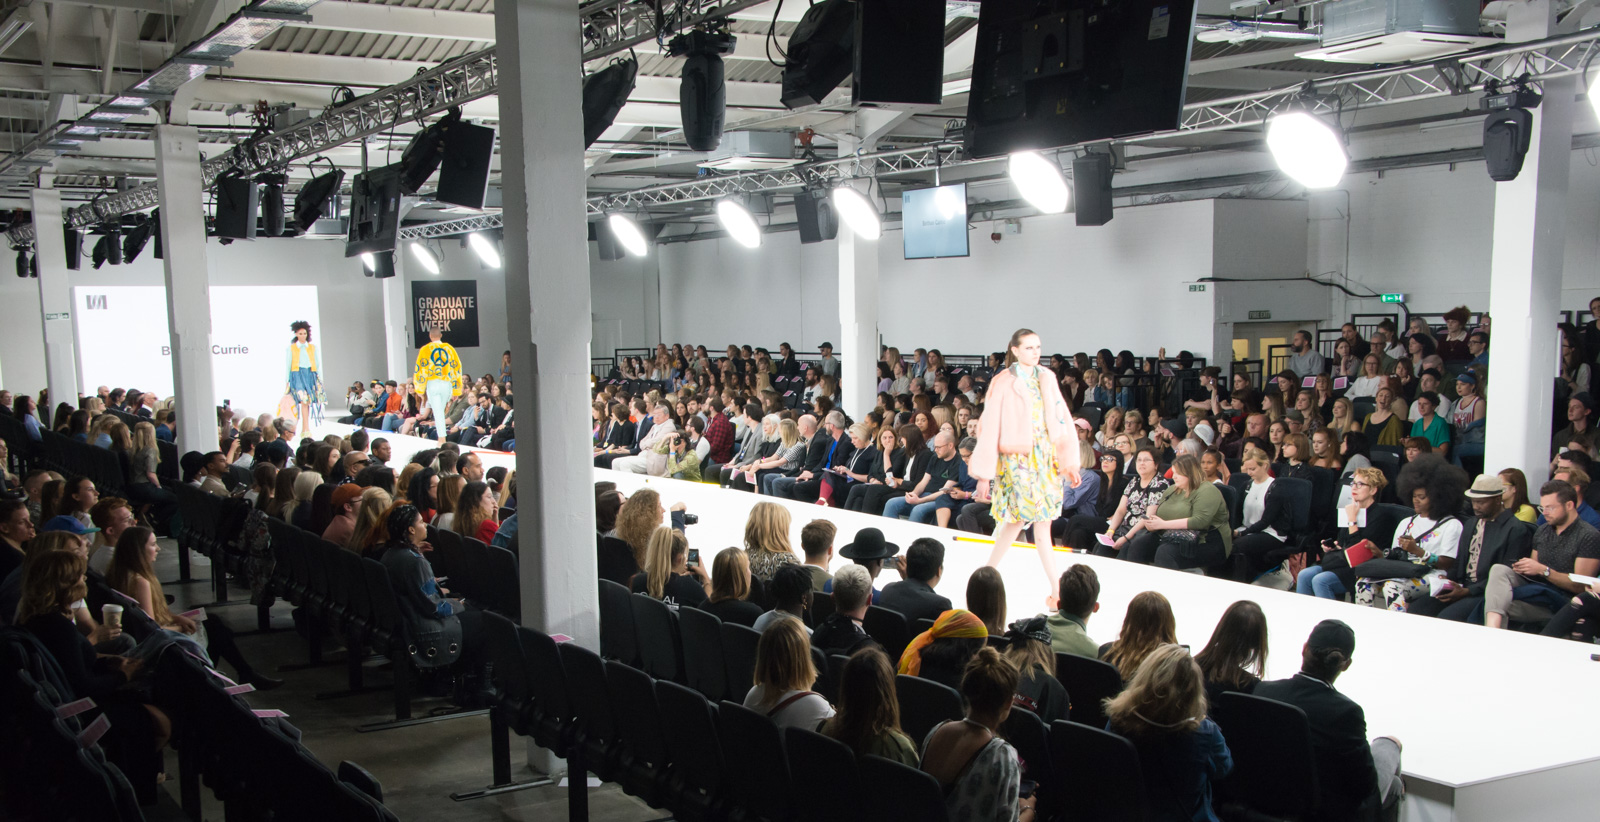 manchester crowd and catwalk 050617 4 image by tina mayr_.jpg